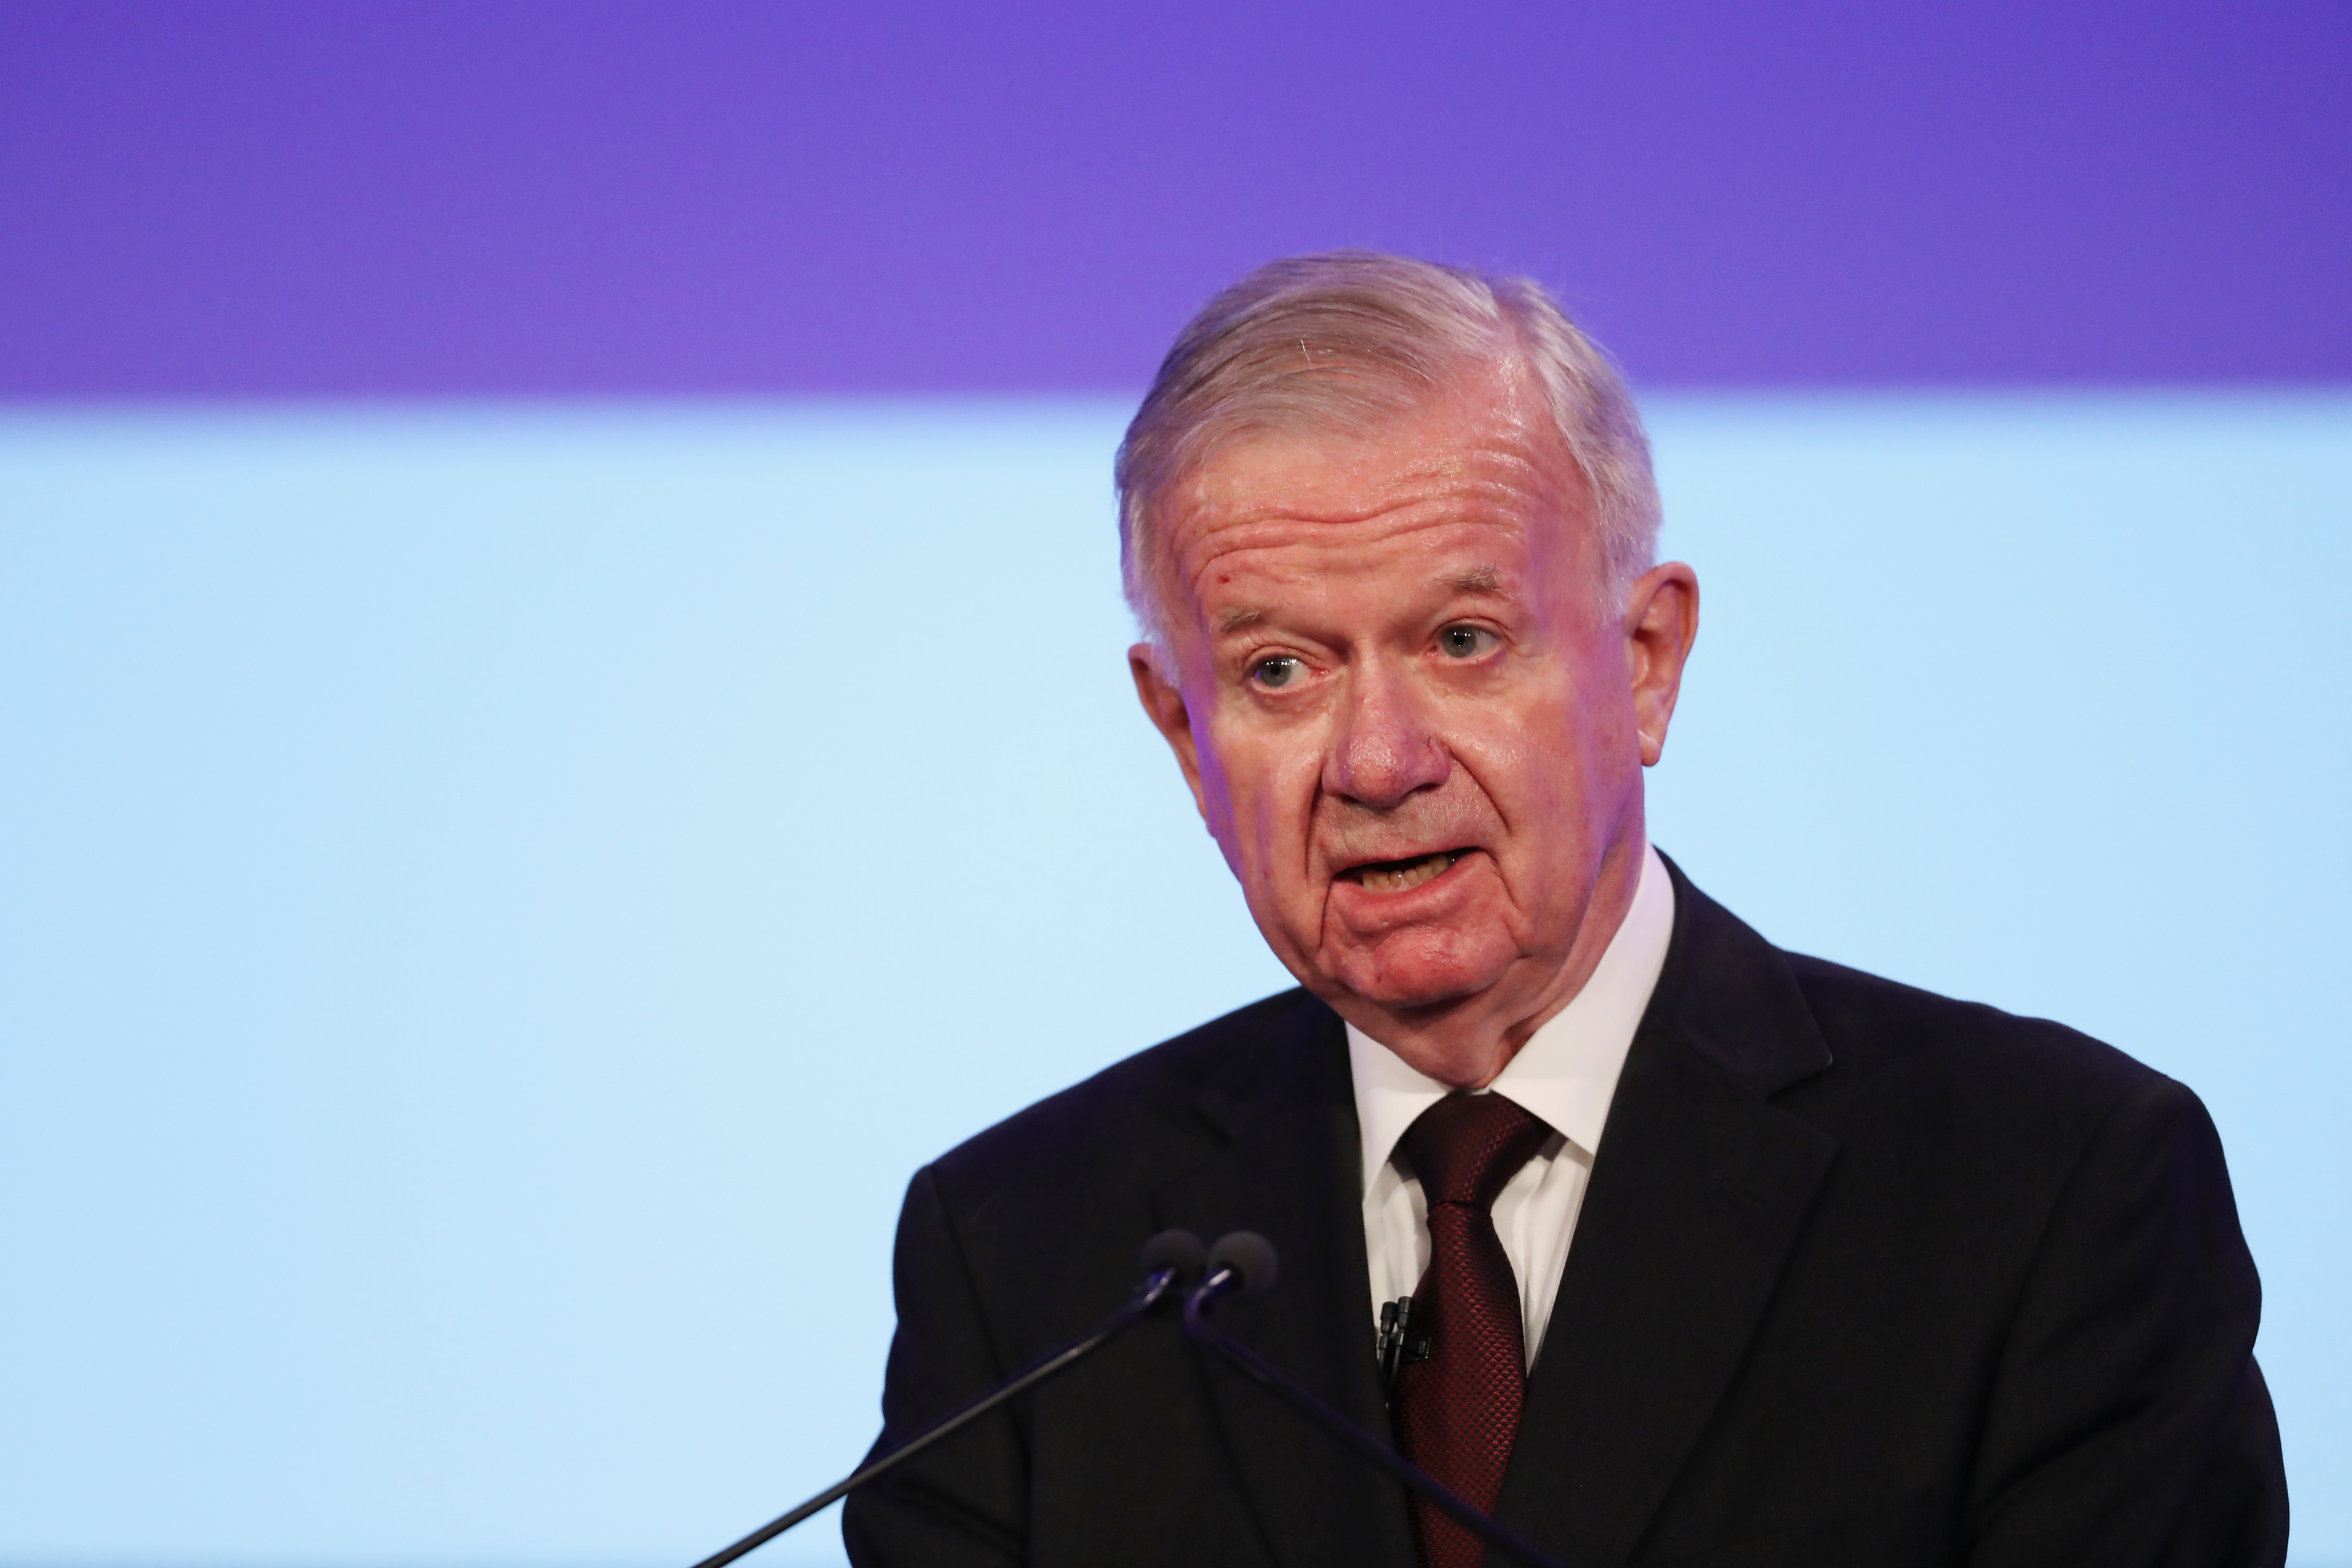 Sir John Chilcot presents The Iraq Inquiry Report.